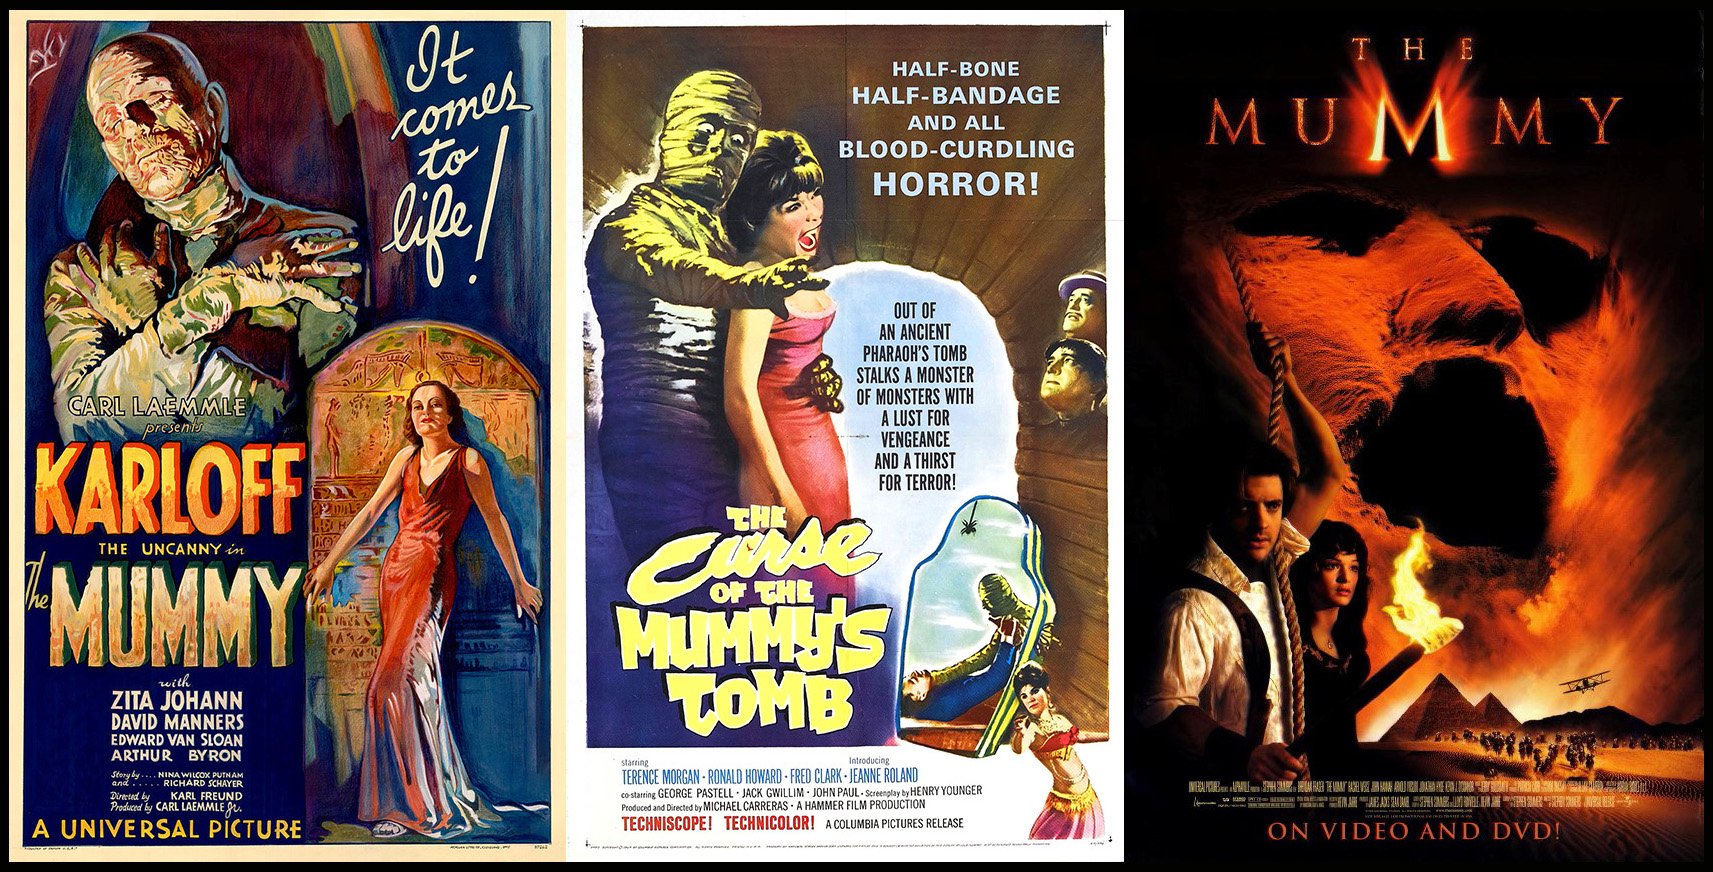 Posters for Films on mummies